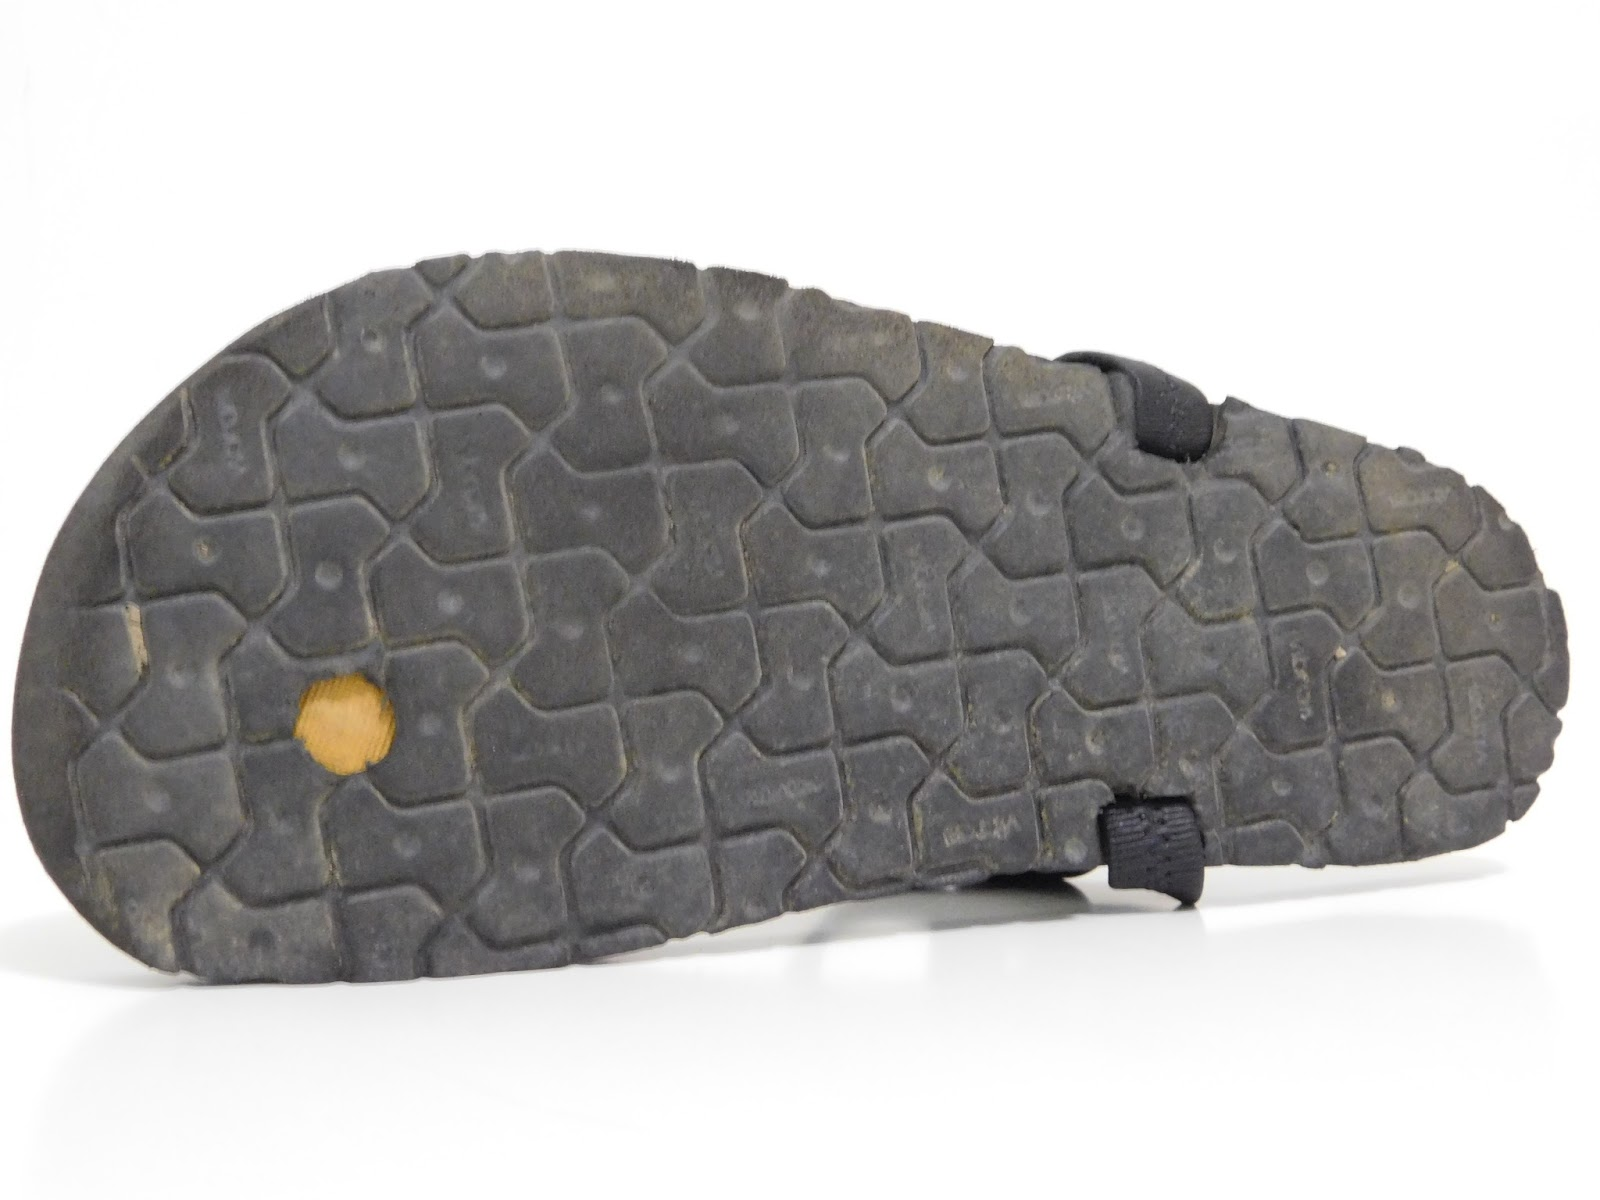 f910f4be64f81f The sole of the MG is the best part of the sandal. The MG uses Luna s Mono  sole which is a Vibram foam rubber hybrid. Think Nike Free sole but with  Vibram ...